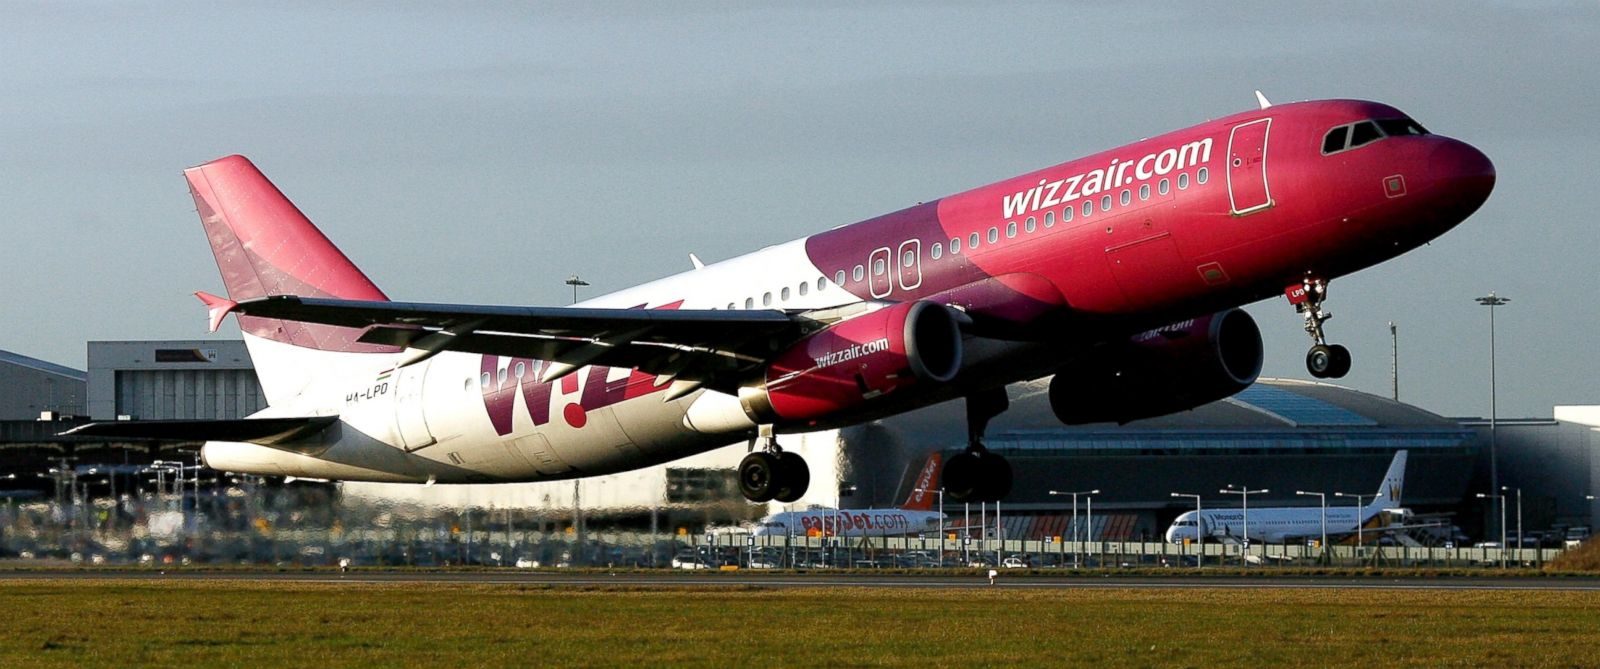 PHOTO: A Wizz Air jet takes off from the runway at Luton airport near Luton, U.K., Dec. 1, 2009.